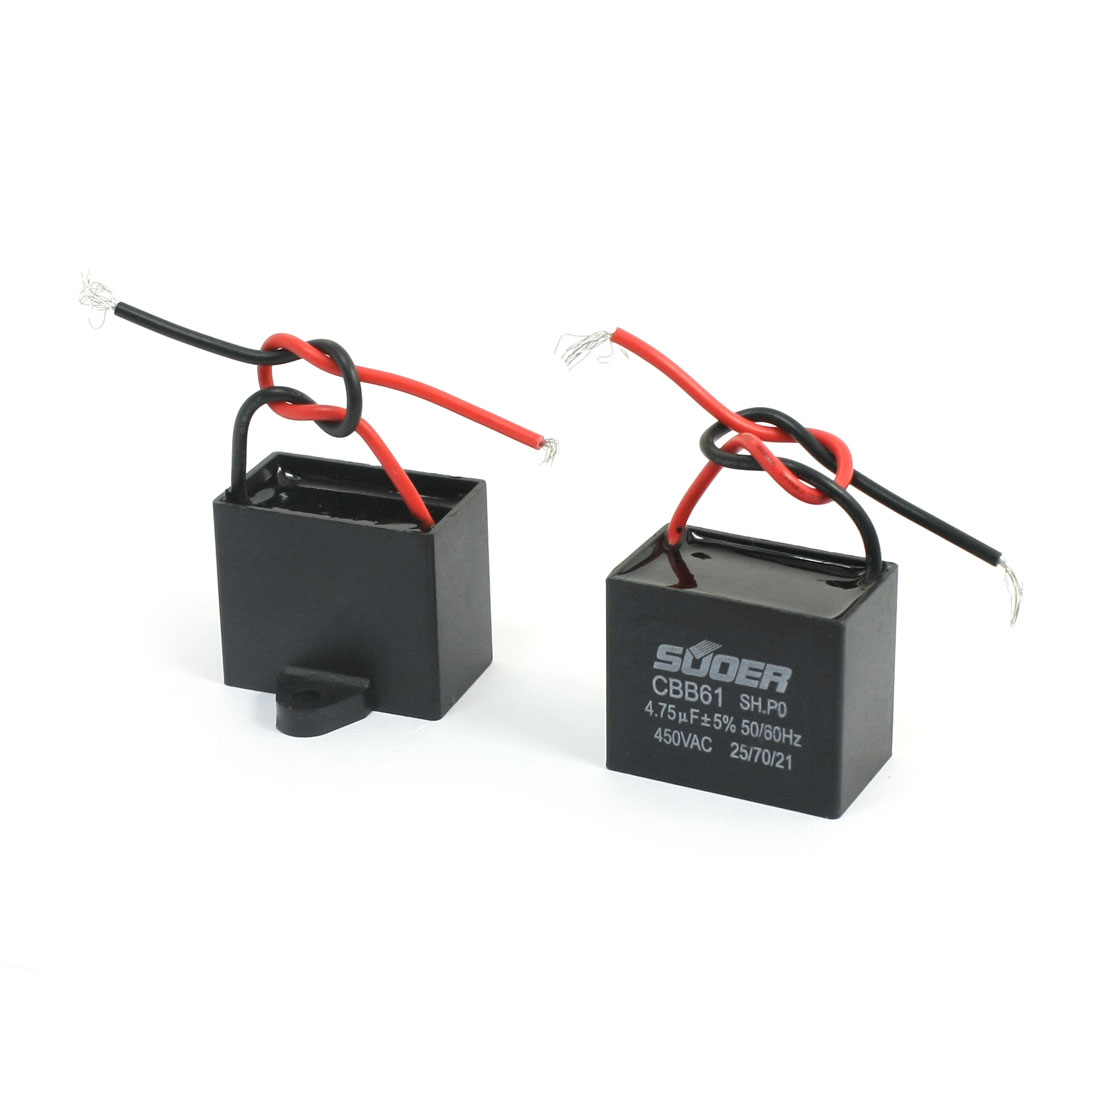 2 Pcs AC 450V 4.75uF 5% Tolerance 2 Wire Non Polar Polypropylene Film Air Condition Motor Running Capacitor Black